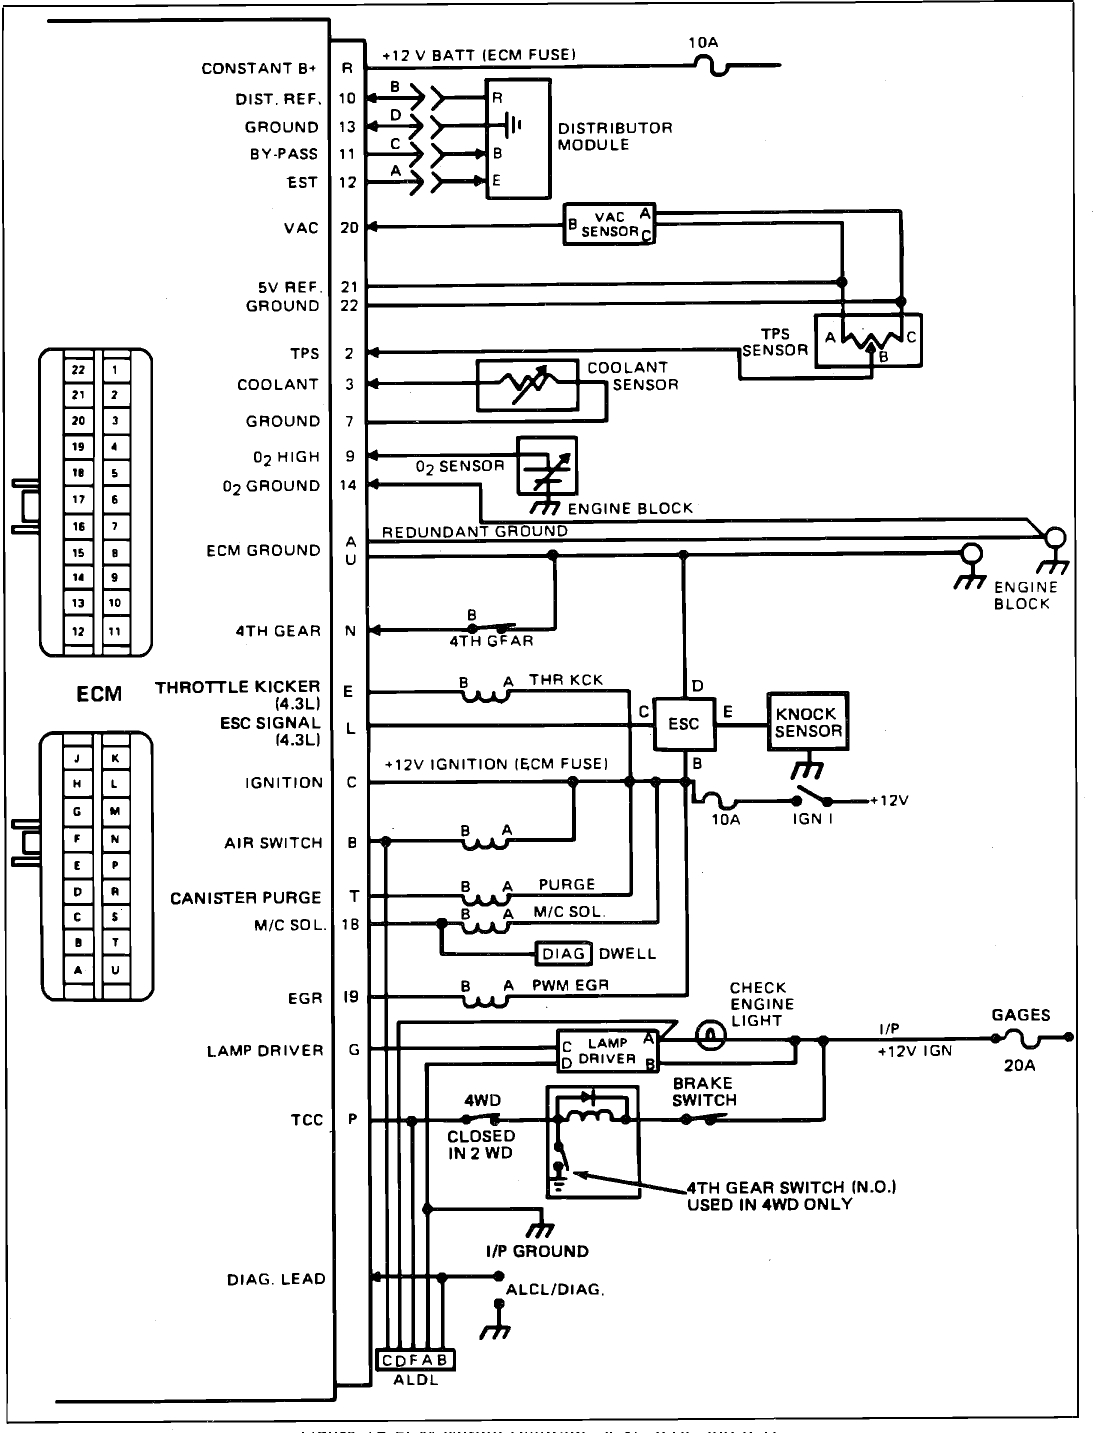 1995 Chevy Silverado Ecm Wiring Diagram Schematic Simple 1994 Truck As Well Pictures K1500 Fuse Box Library